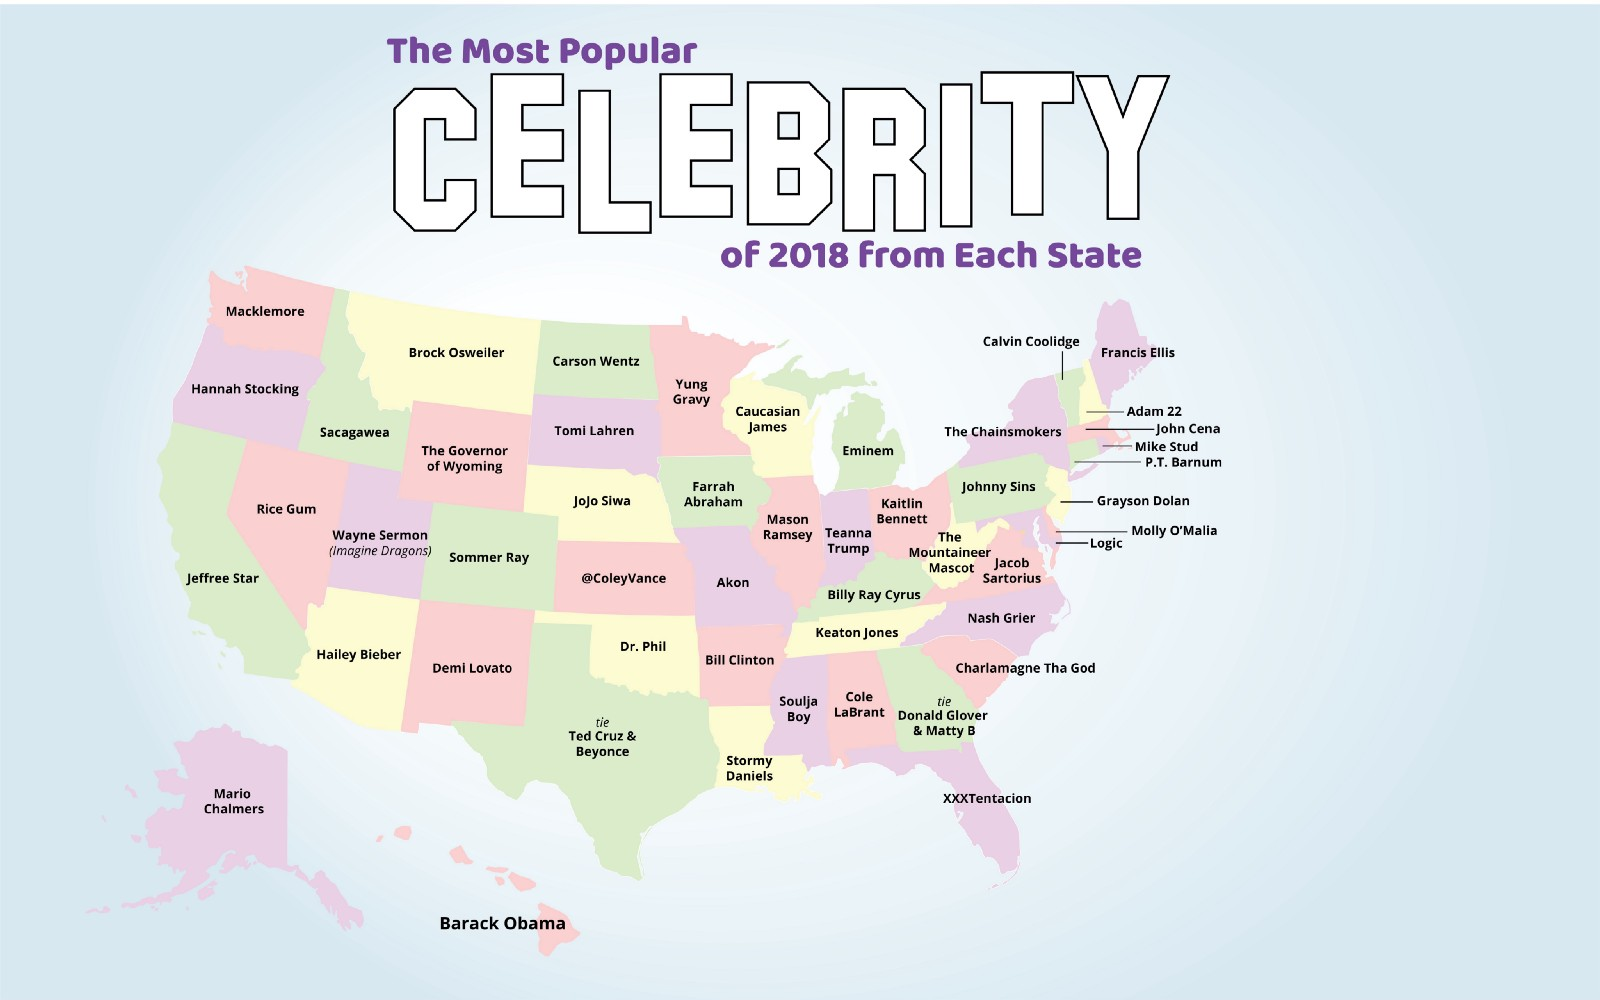 The Most Popular Celebrity of 2018 from Each State